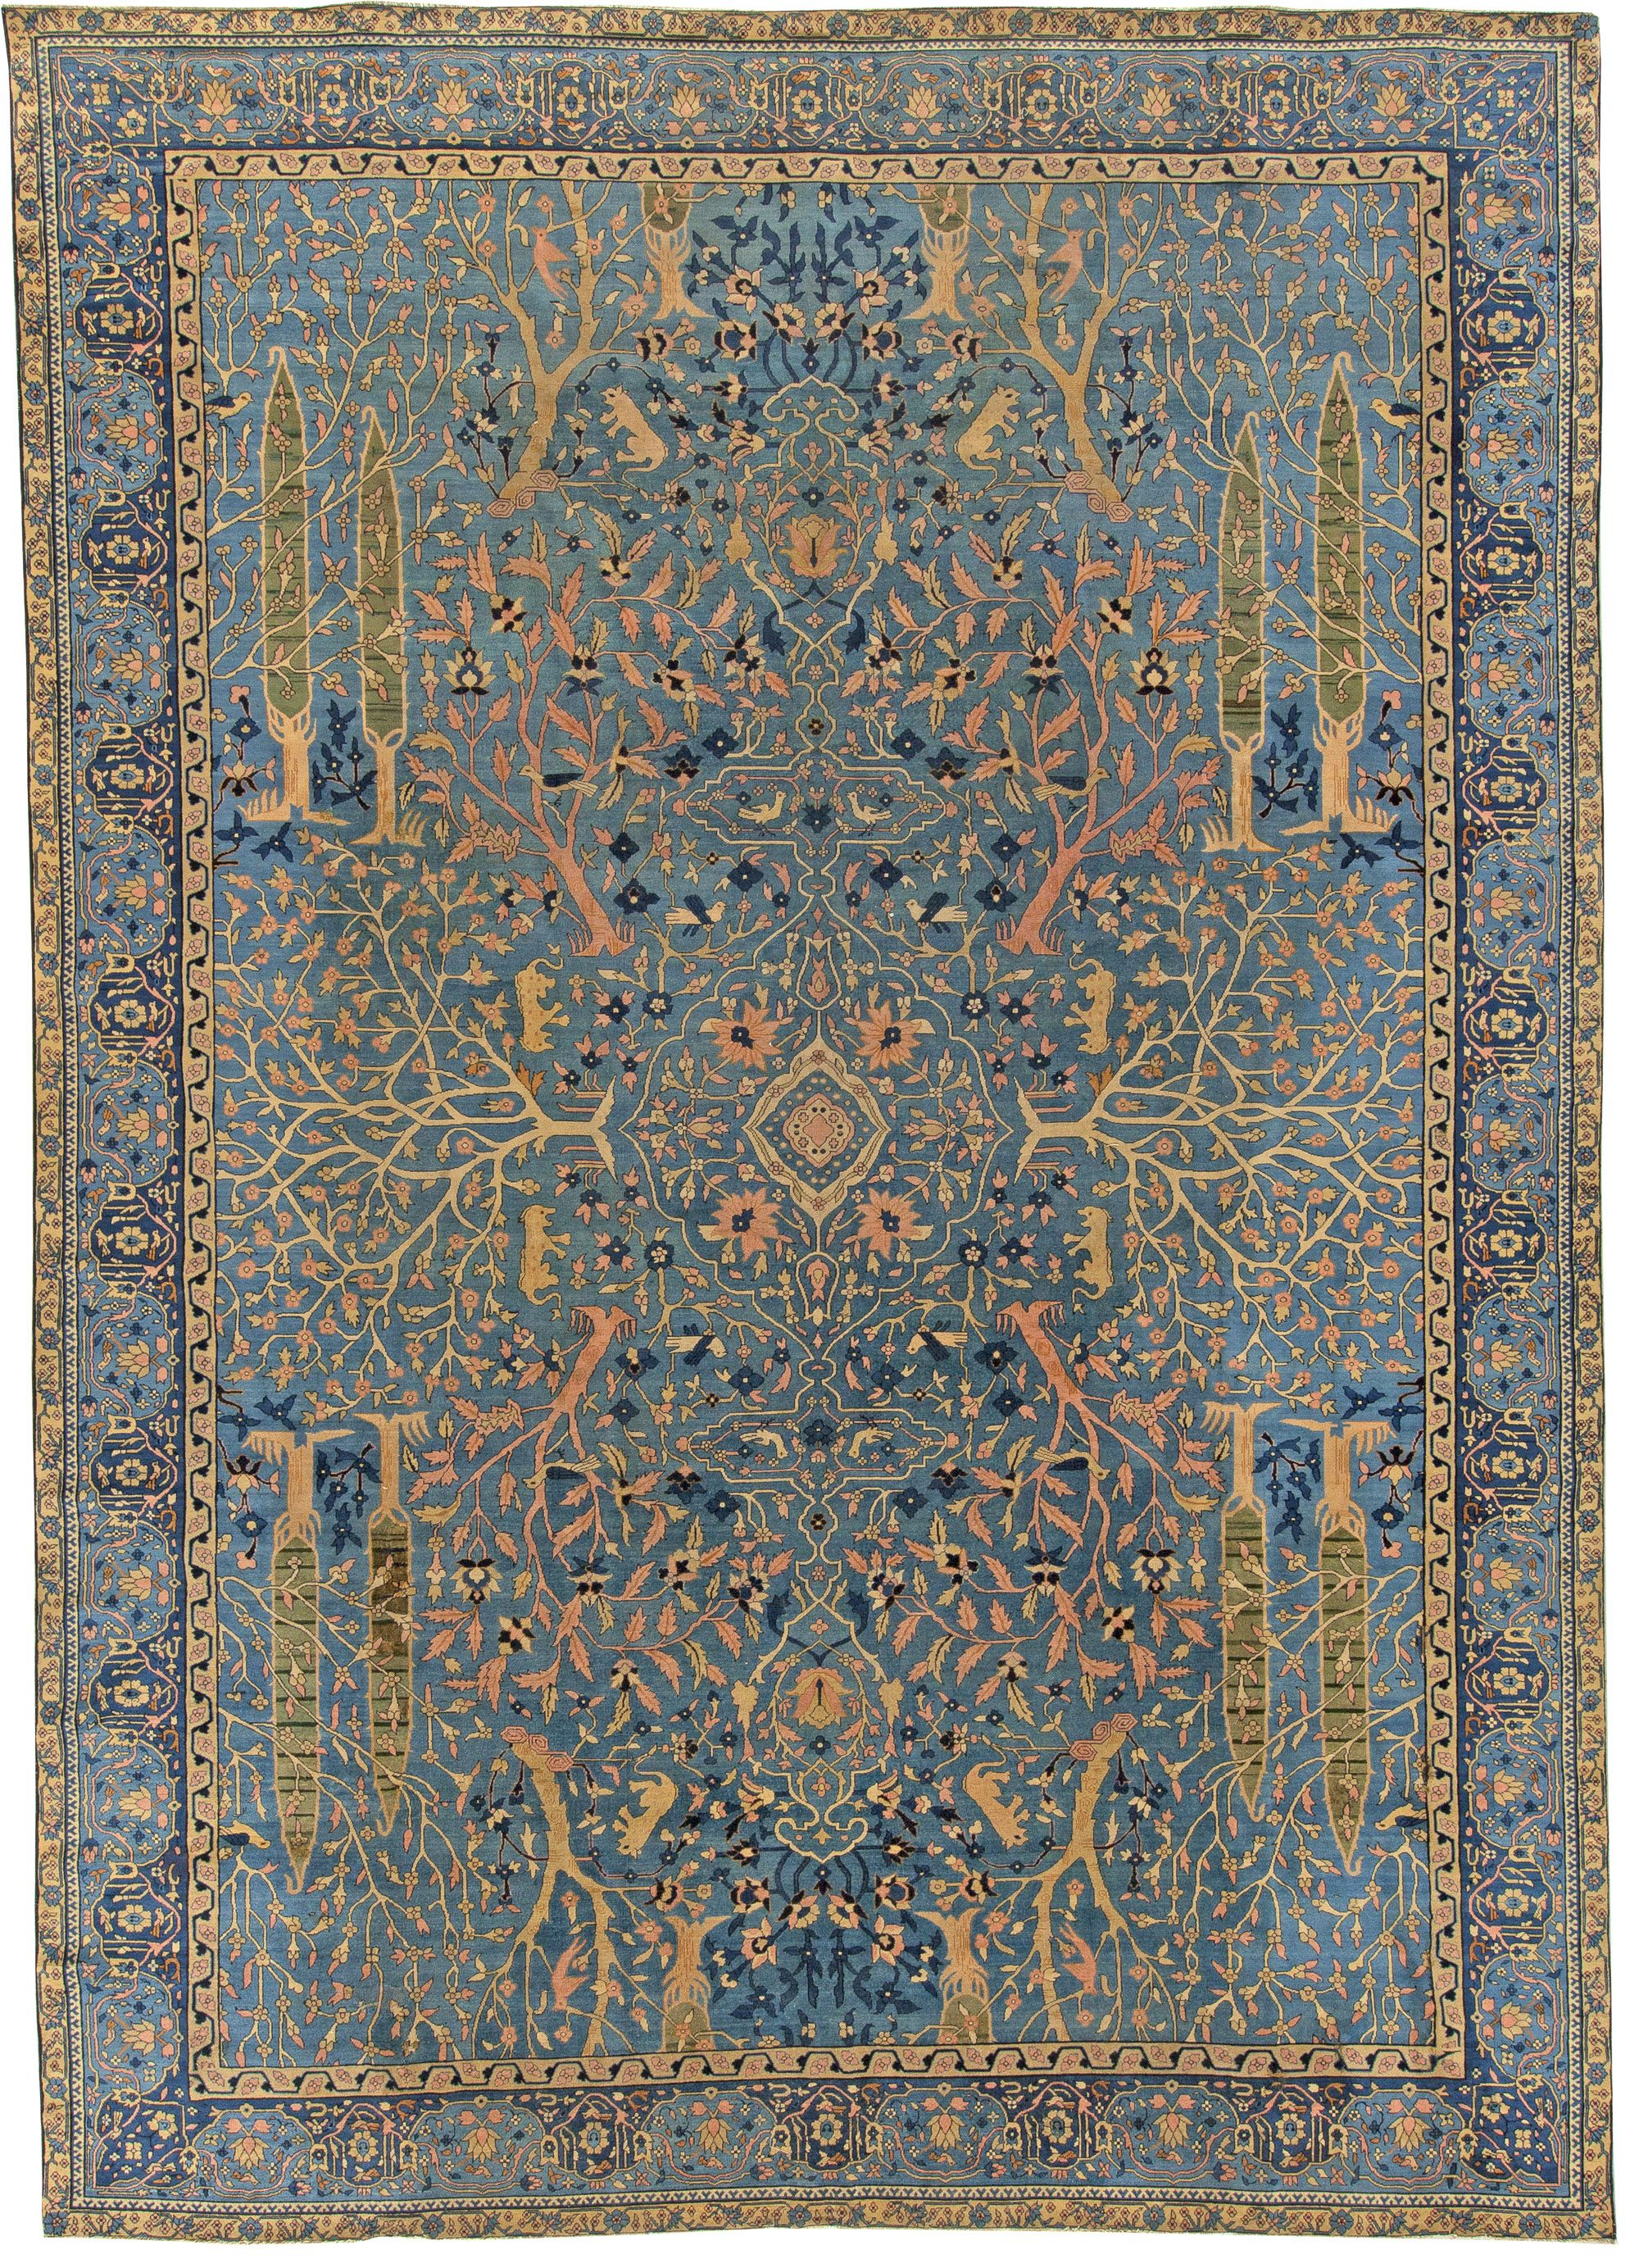 Antique Indian Rug With Images